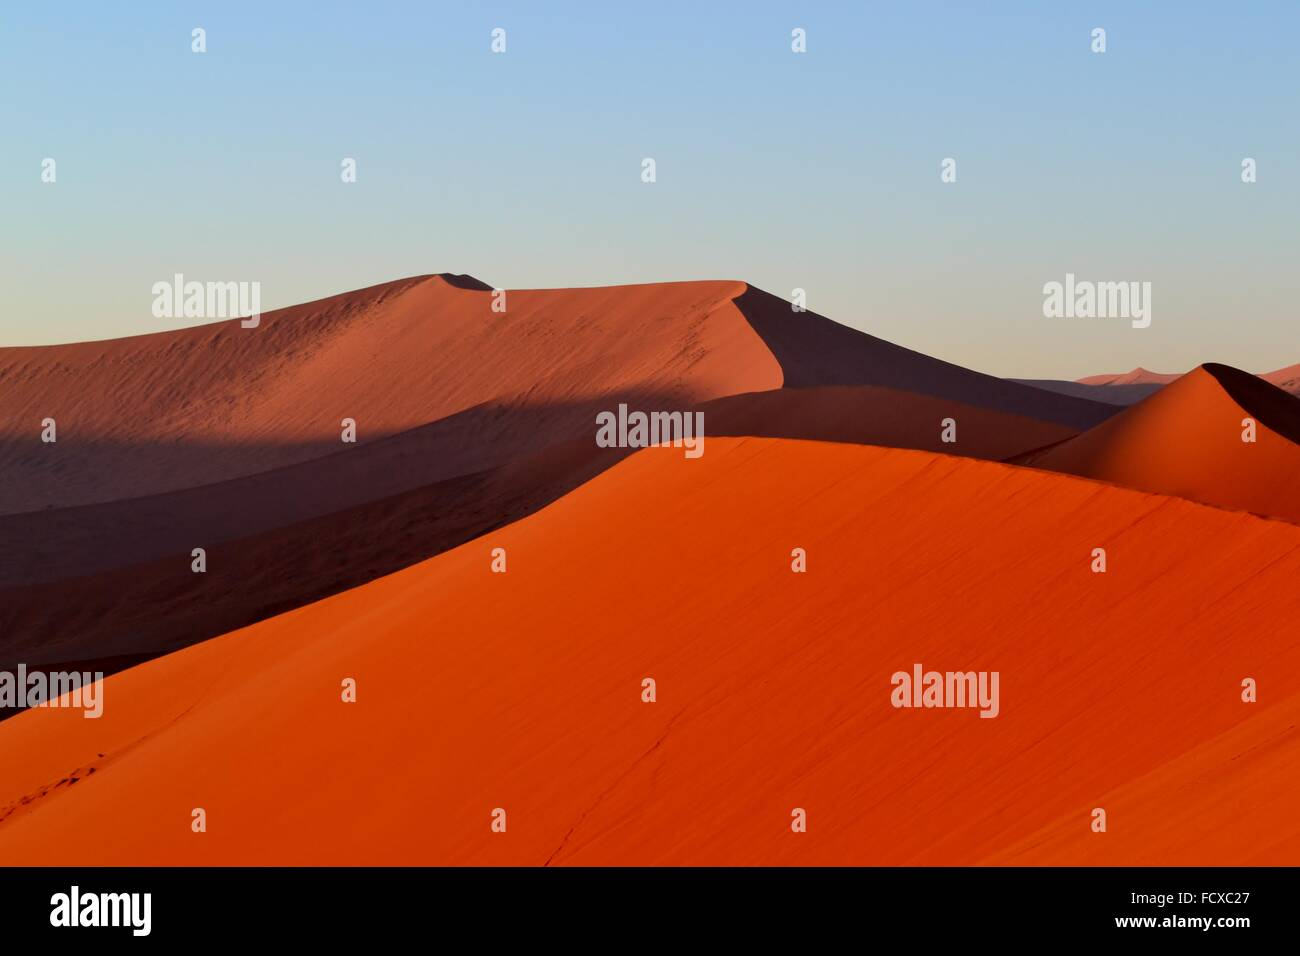 Giant sand dunes at dawn at Sossusvlei, Namibia, Africa - Stock Image